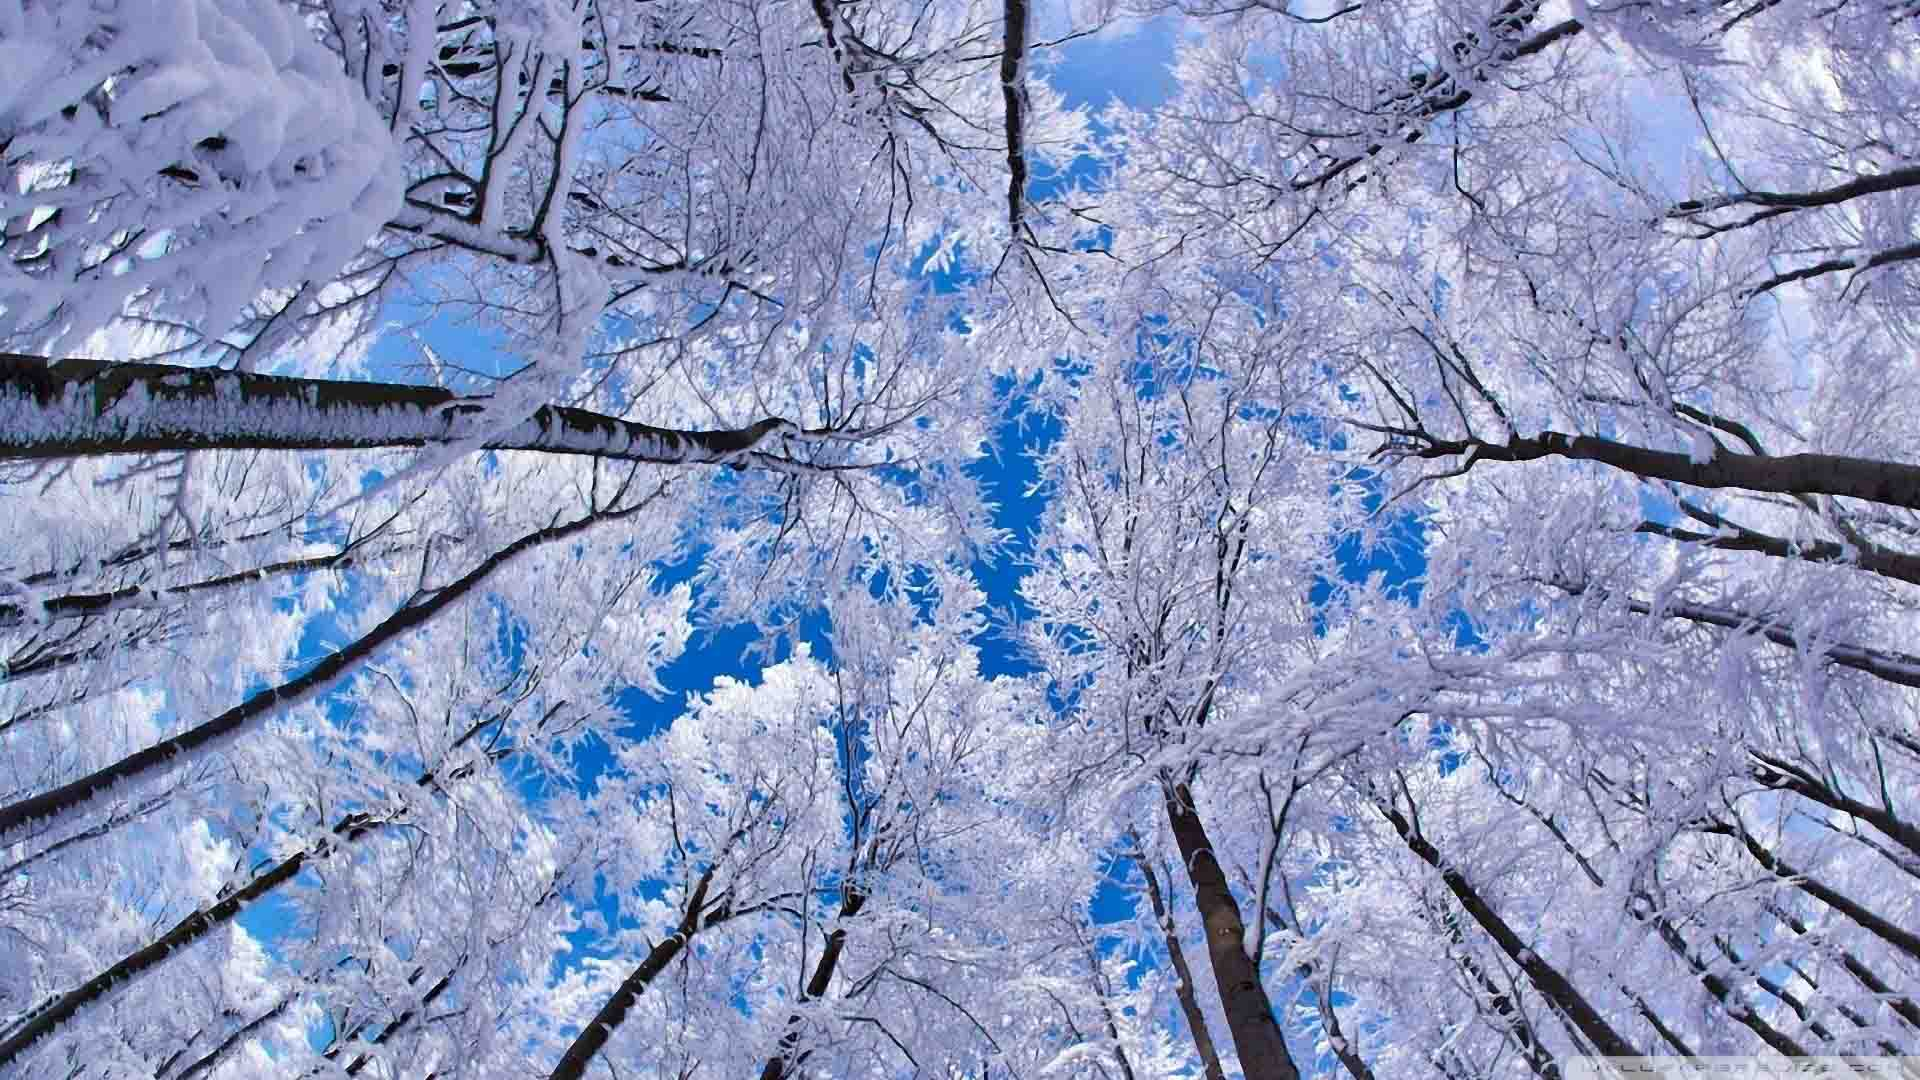 Winter Scenes Desktop Wallpaper The Best HD Wallpaper 1920x1080